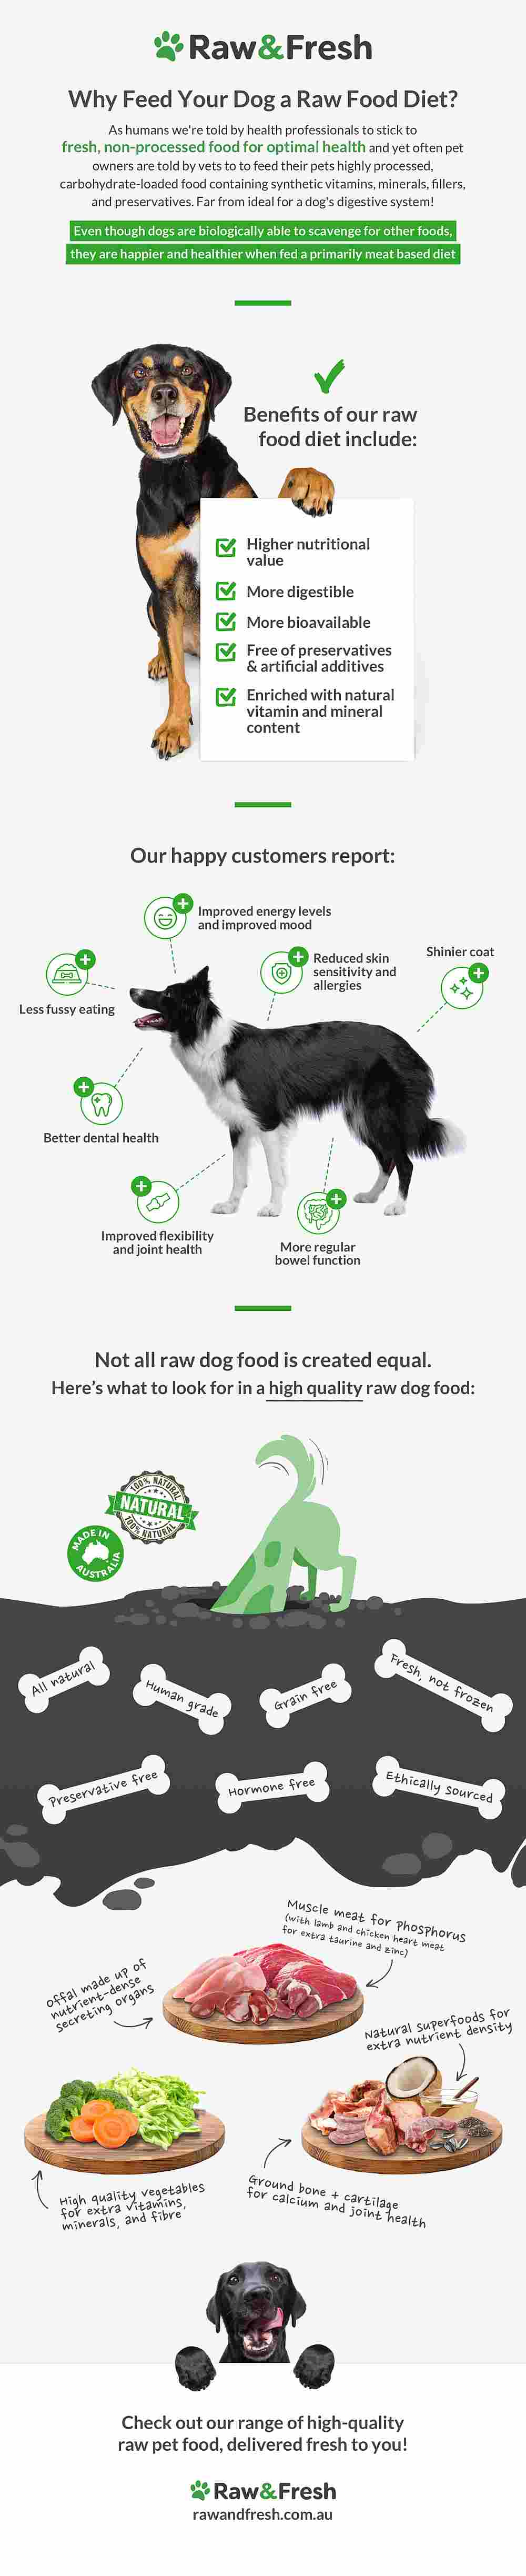 Why Feed Your Dog A Raw Food Diet